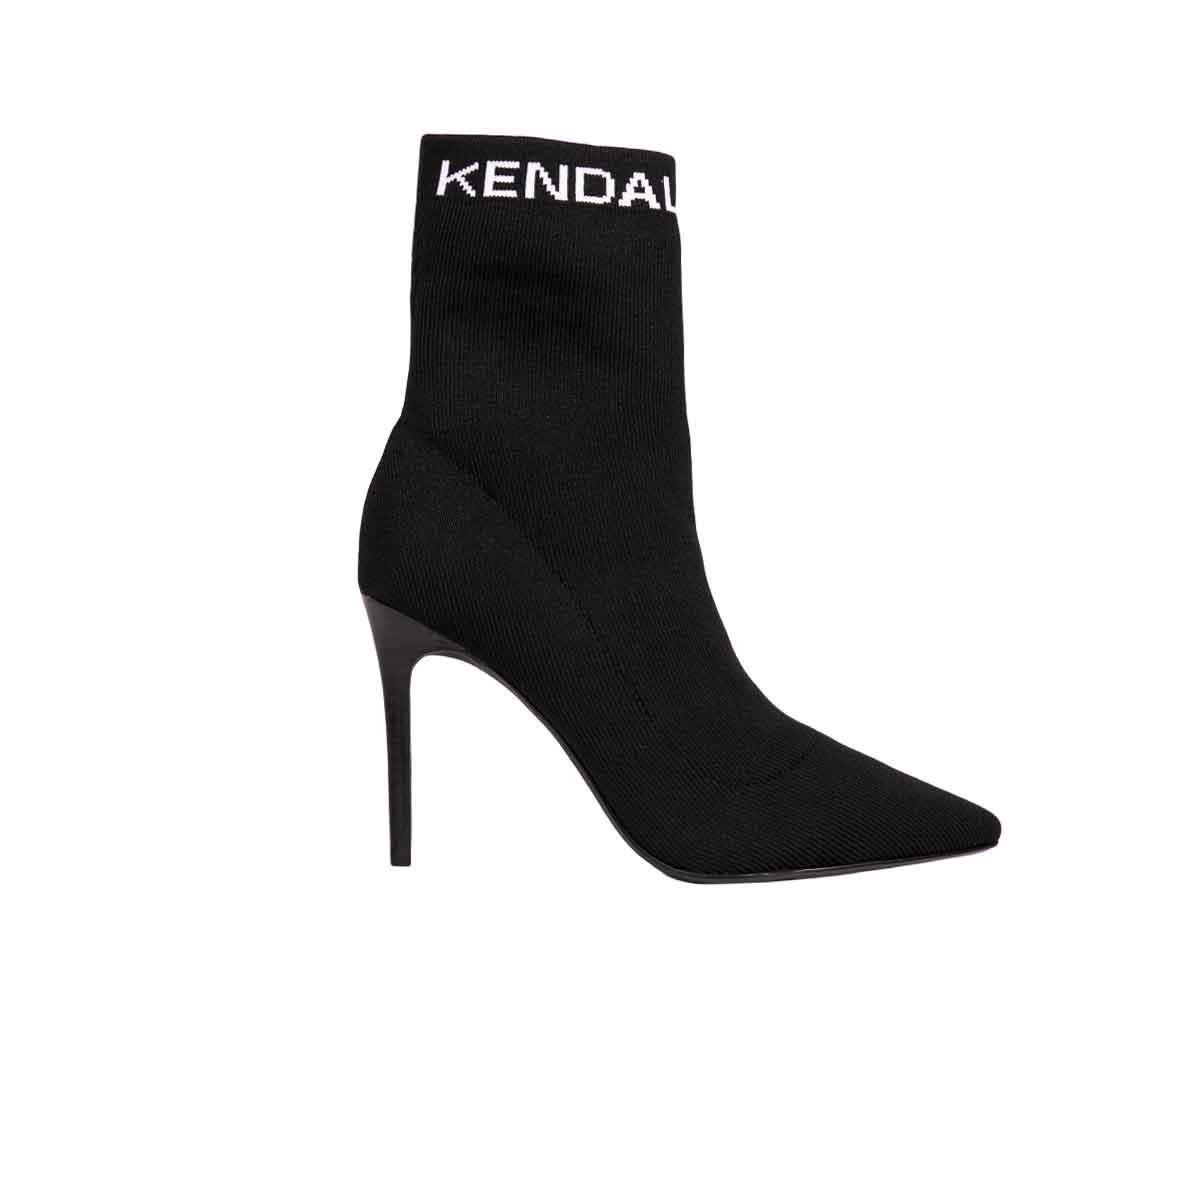 Kendall + Kylie Miranda Ankle Boots